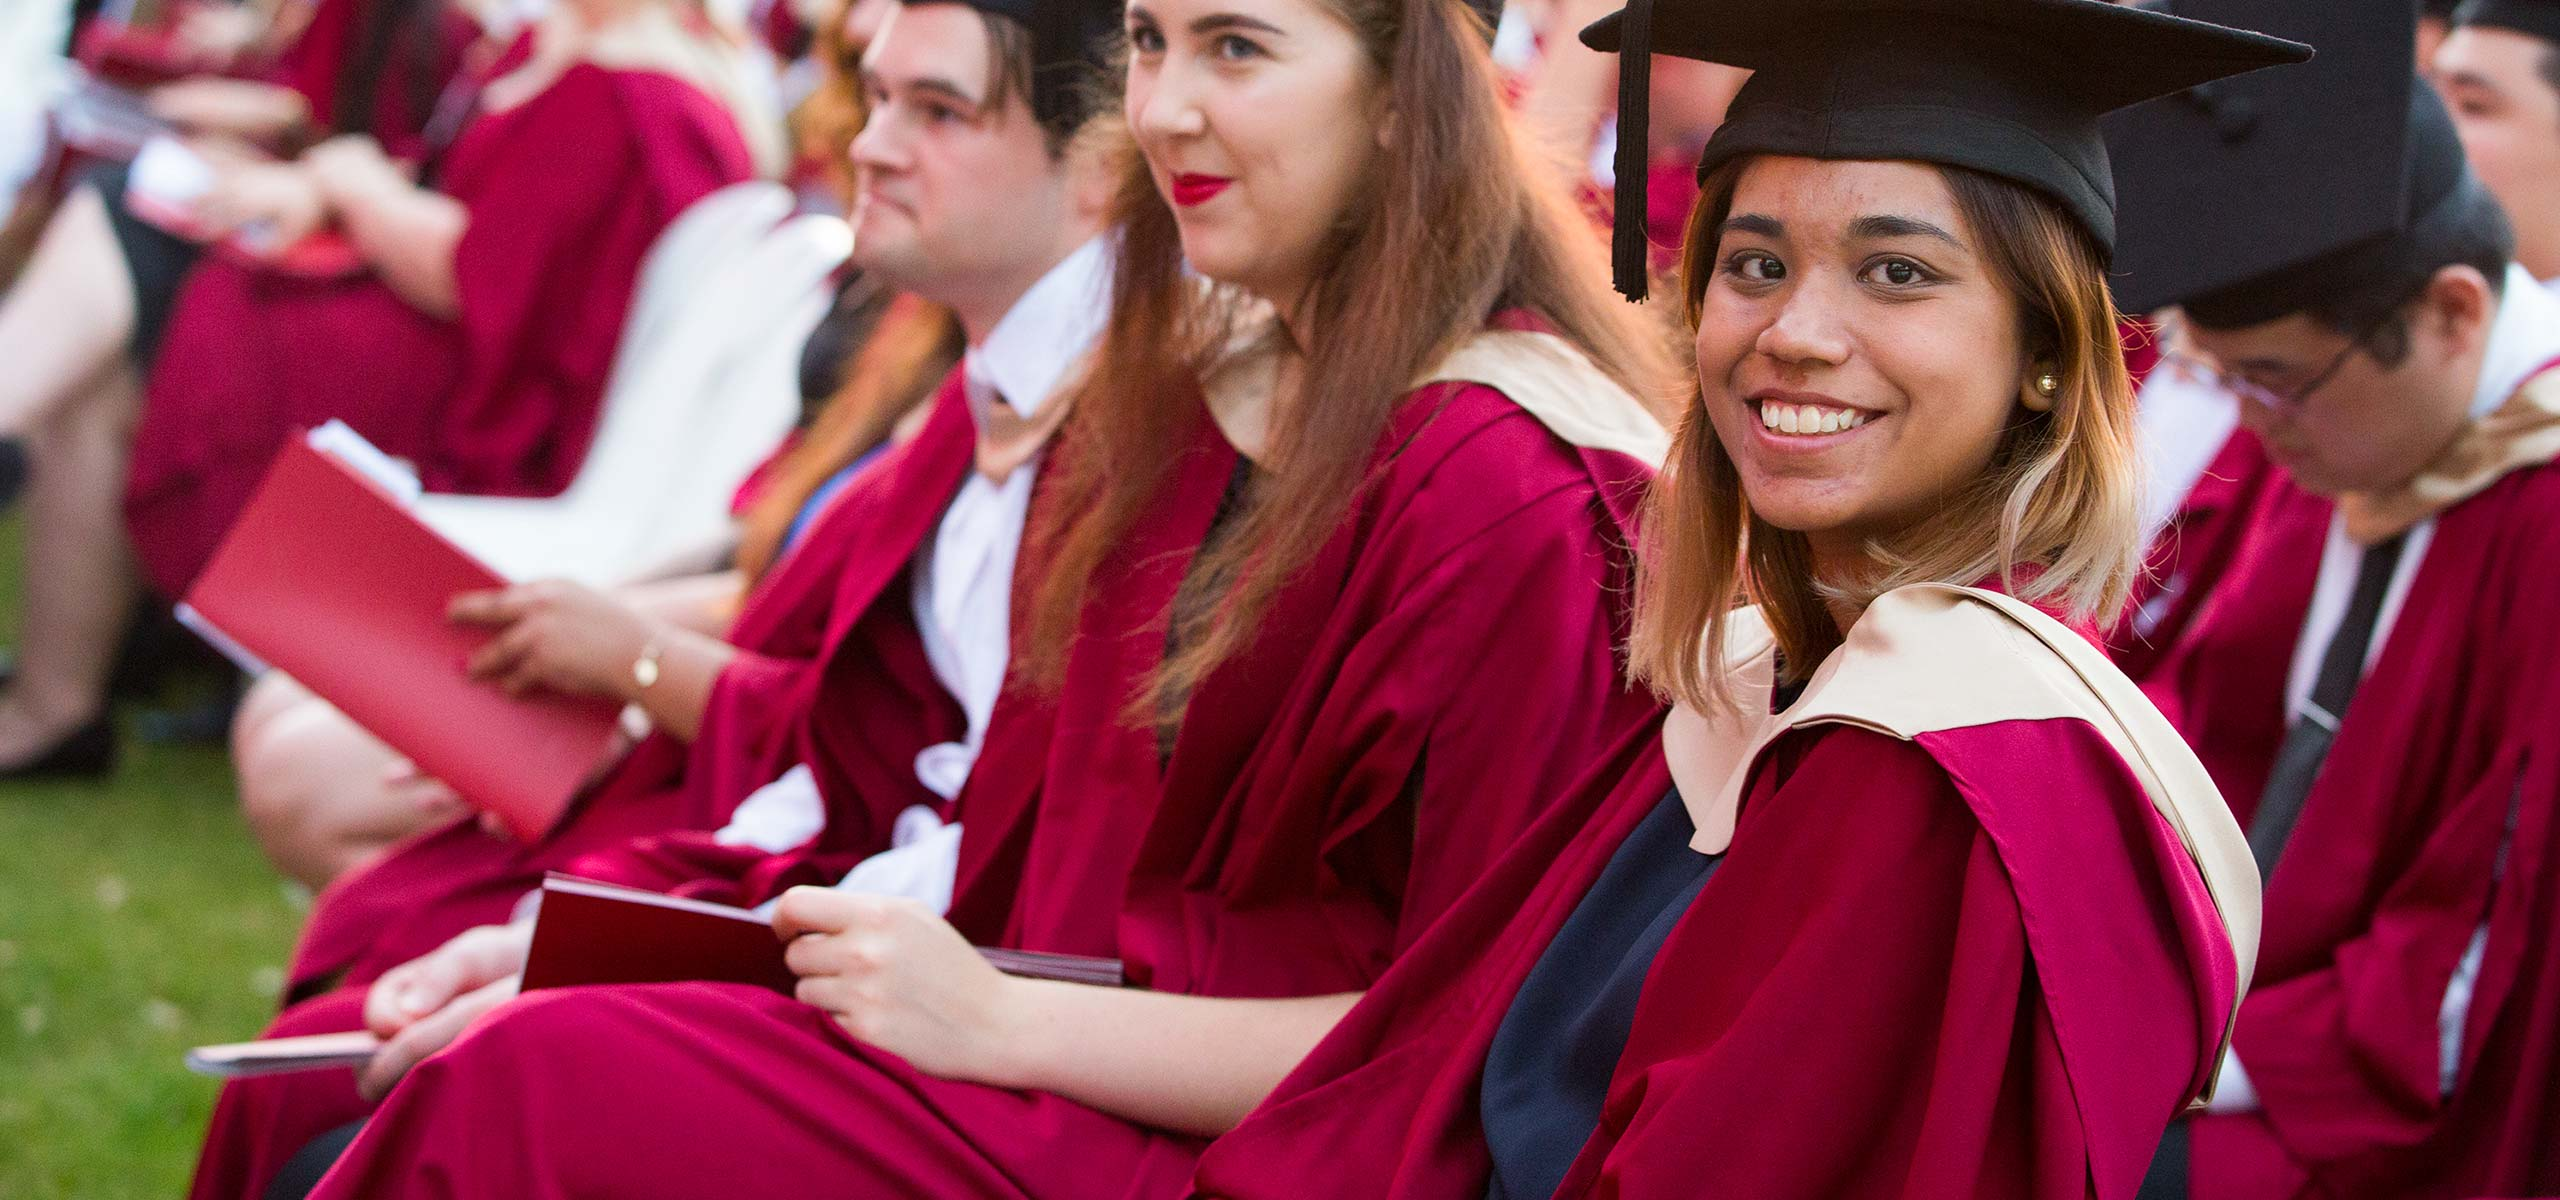 Female graduate in gown, smiling at camera